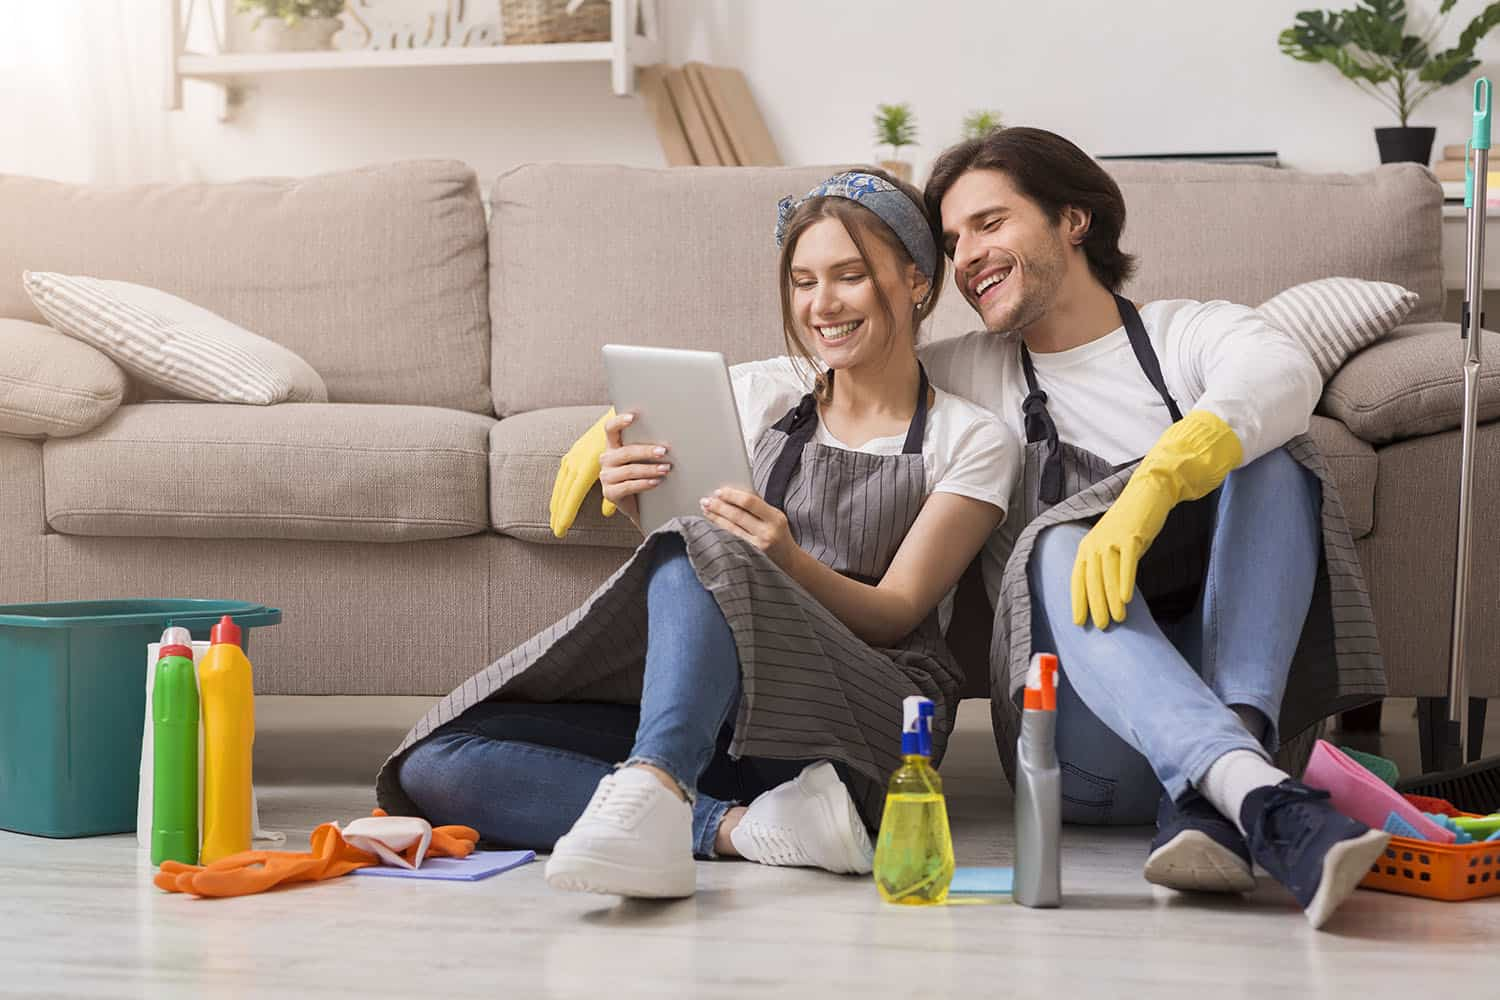 Smiling couple relaxing among cleansing tools